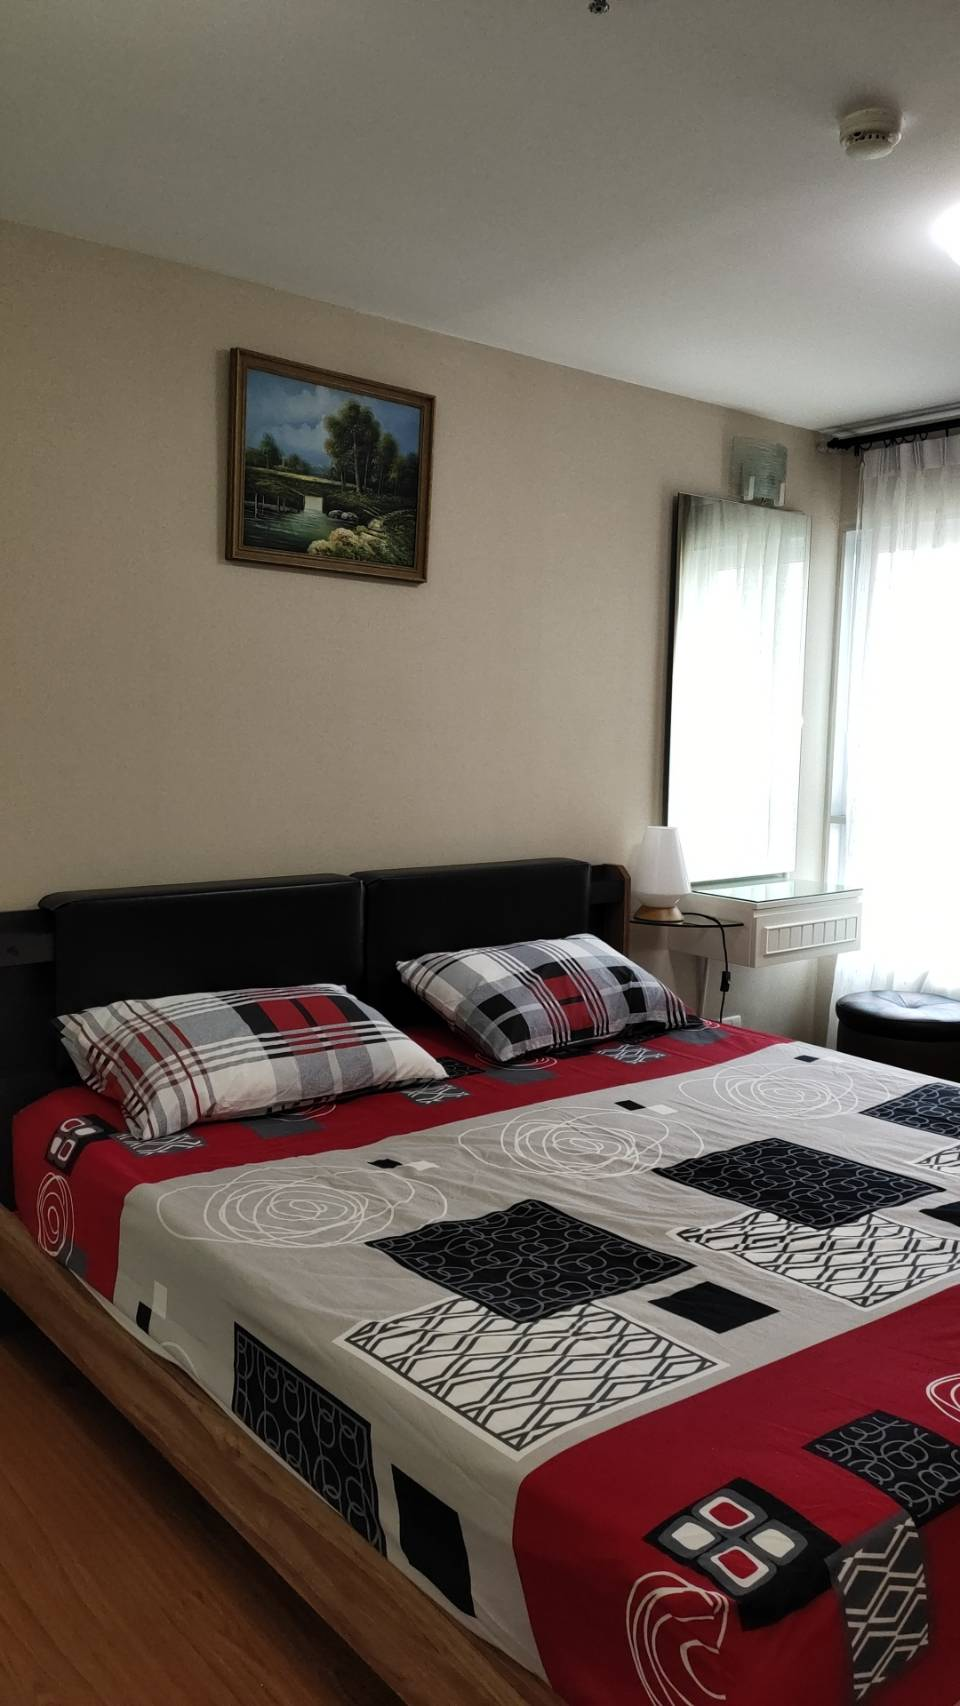 For Rent Bell Rama 9 for Rent ***Special Price 22,000***